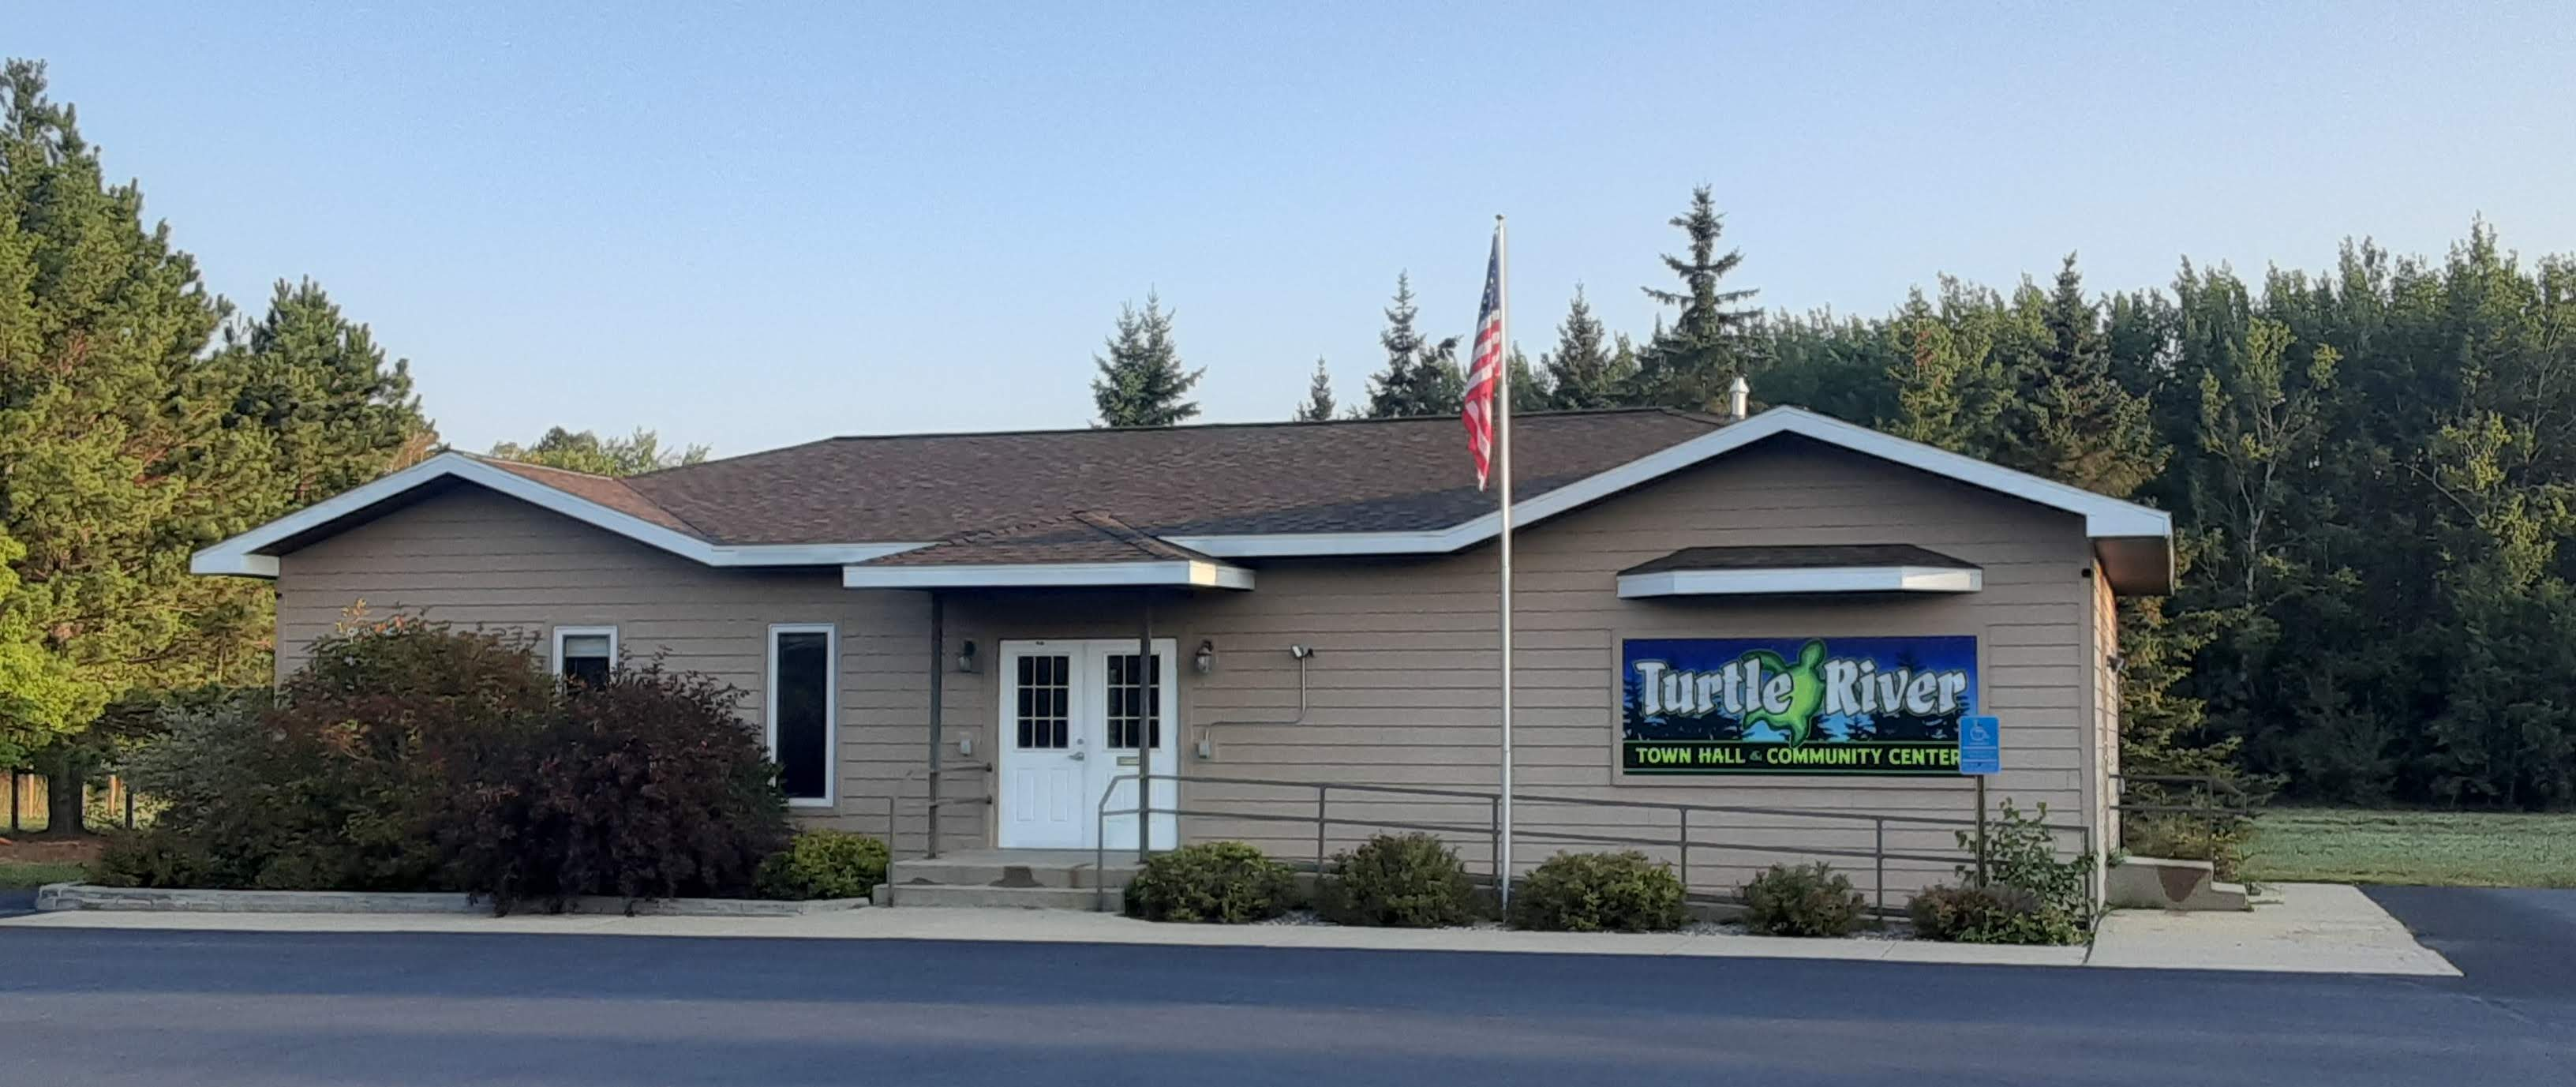 Turtle River Township town hall and community center